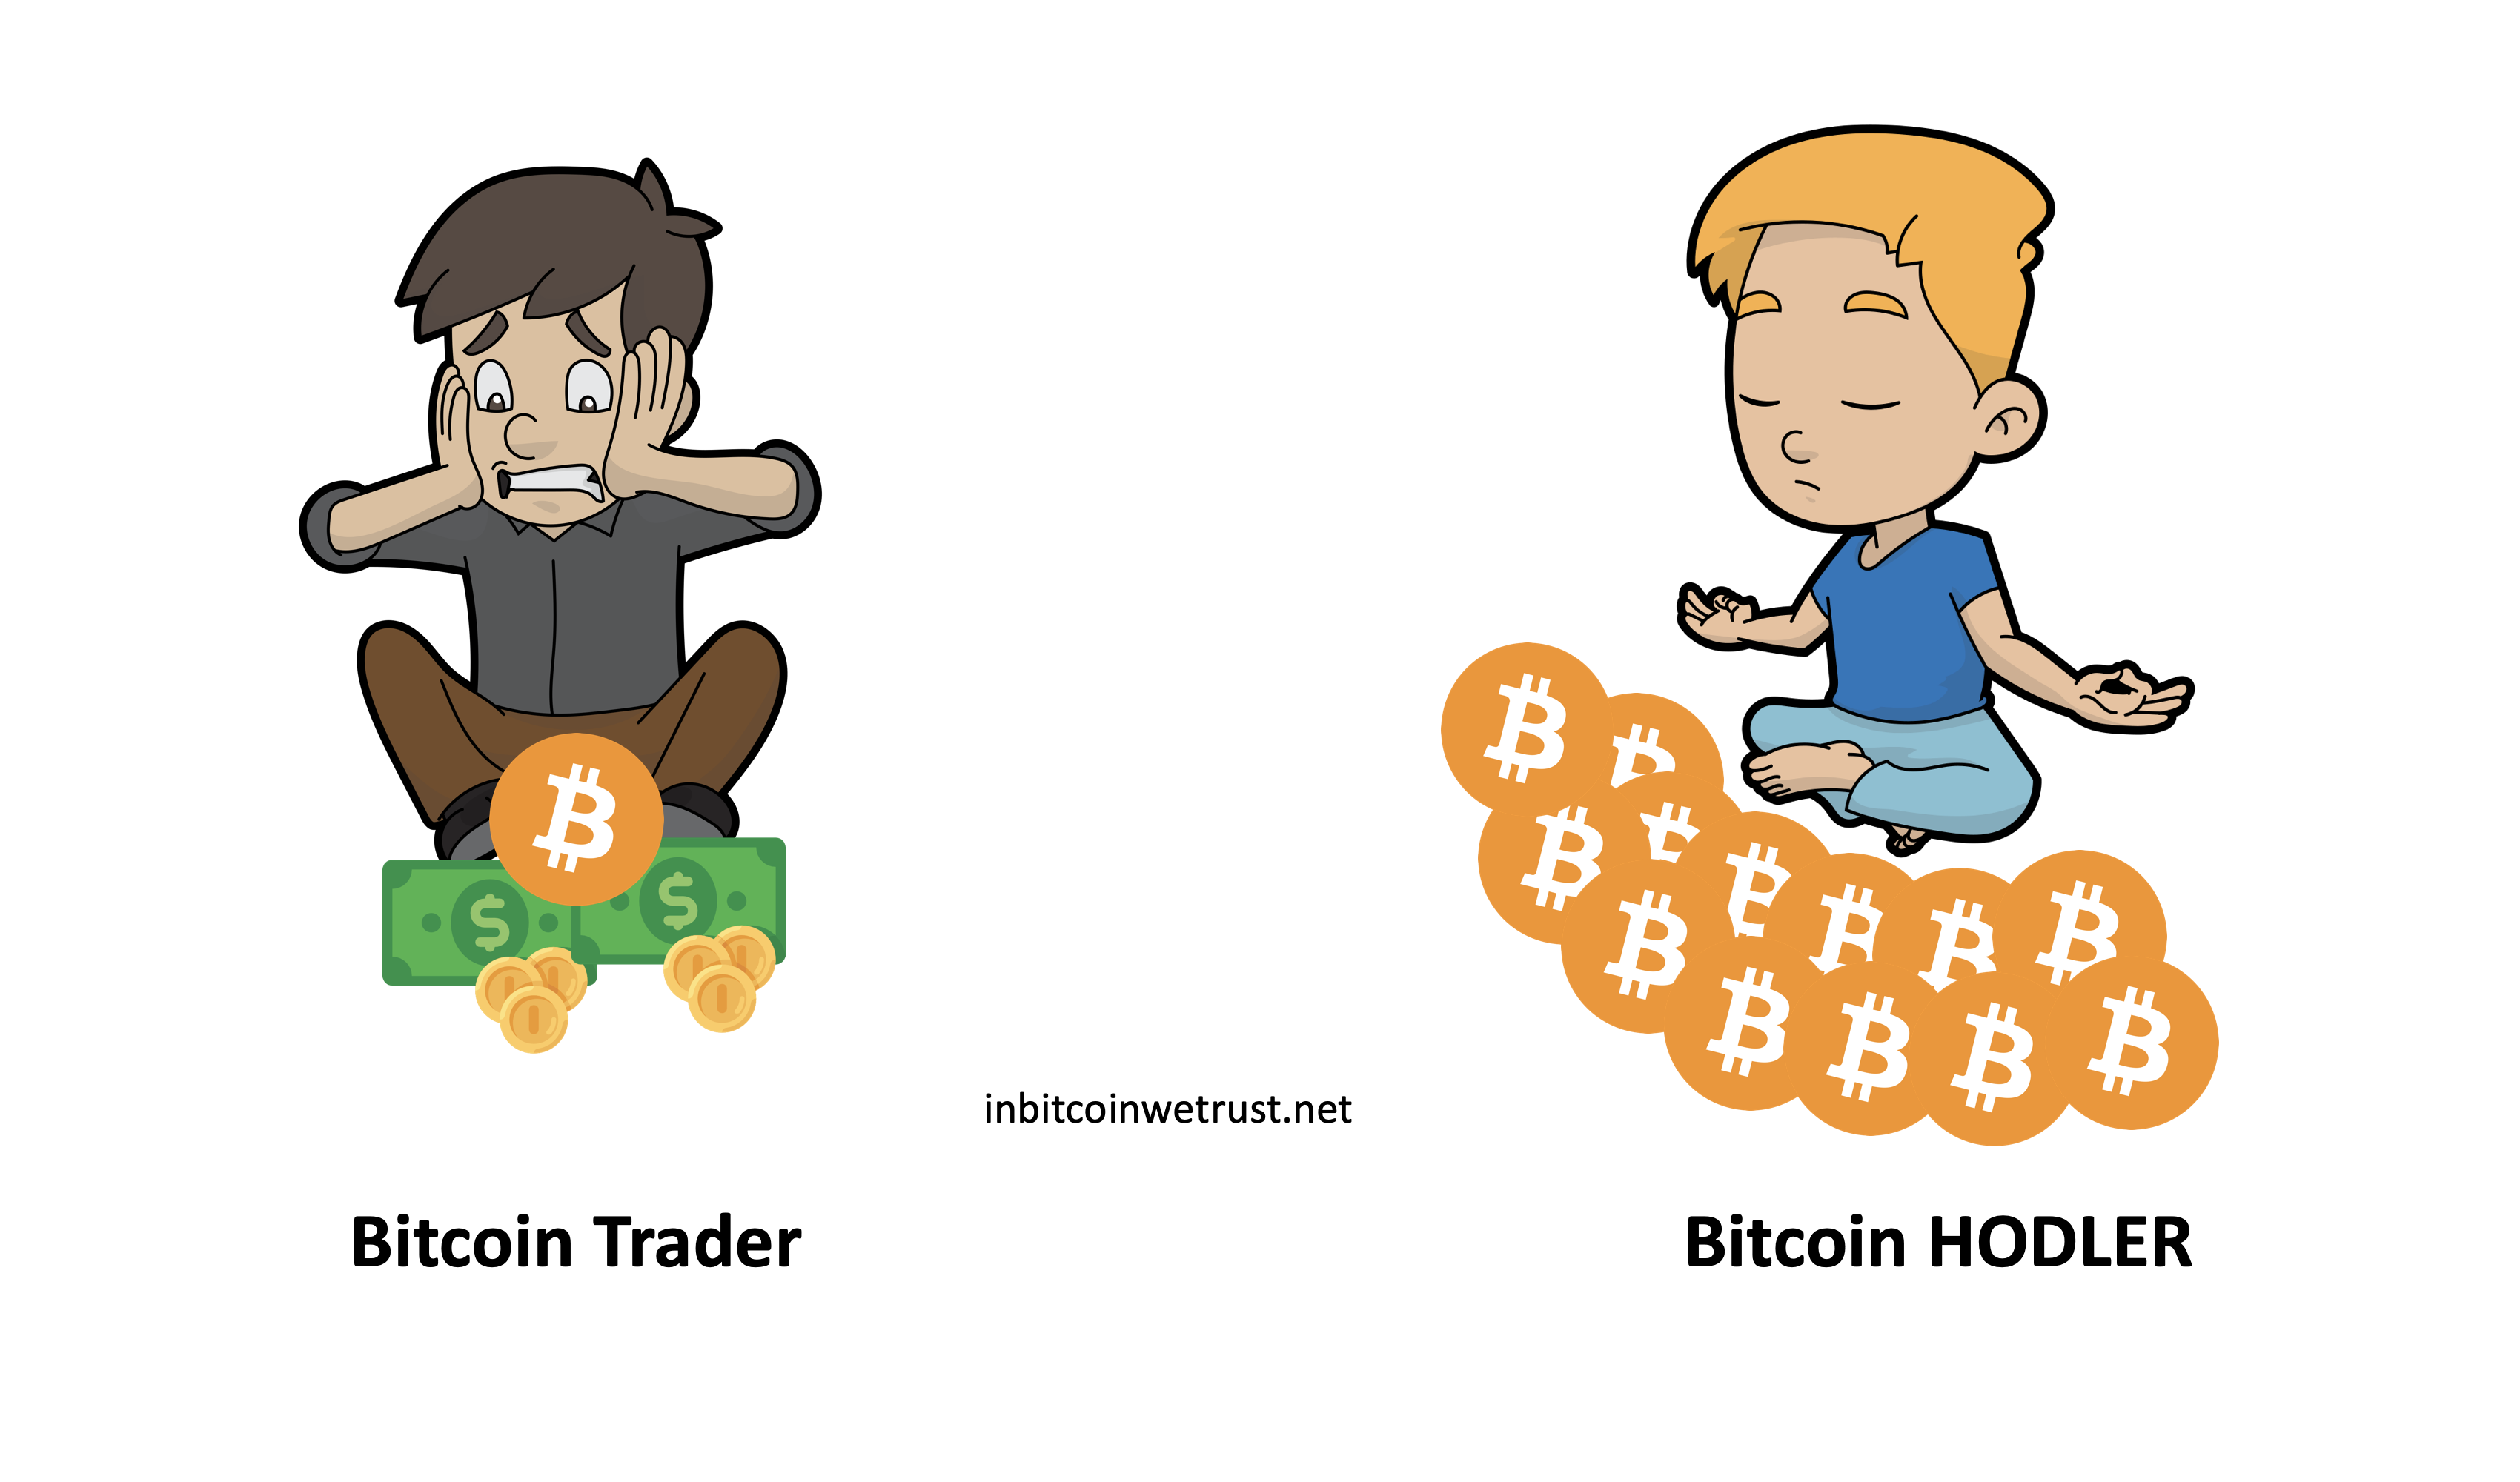 Bitcoin HODLERS